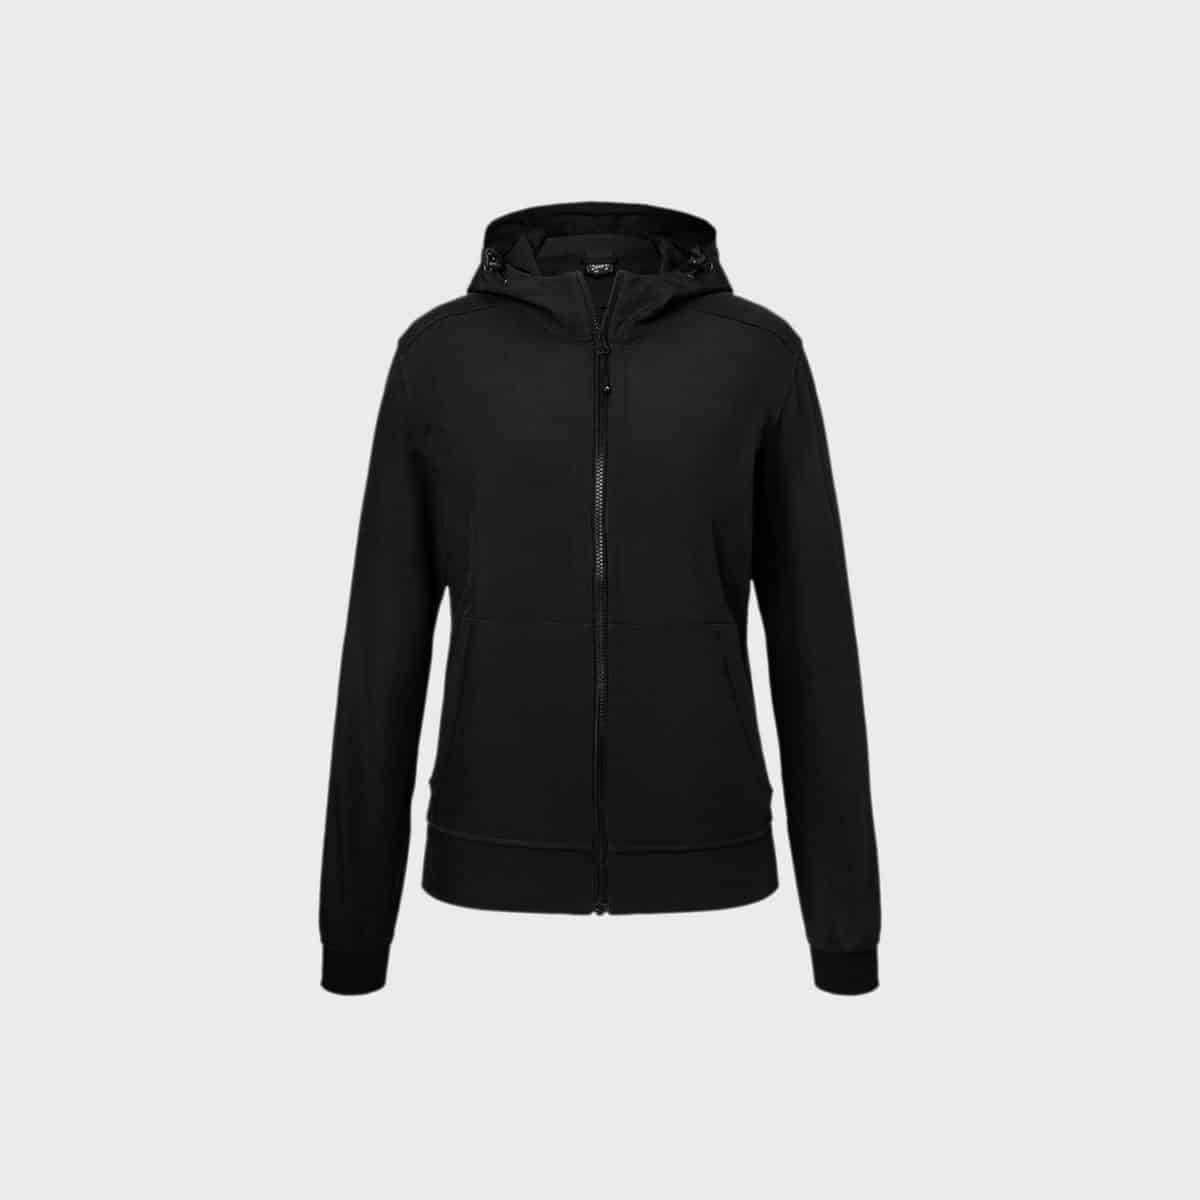 softshell-jacket-hooded-damen-black-kaufen-besticken_stickmanufaktur